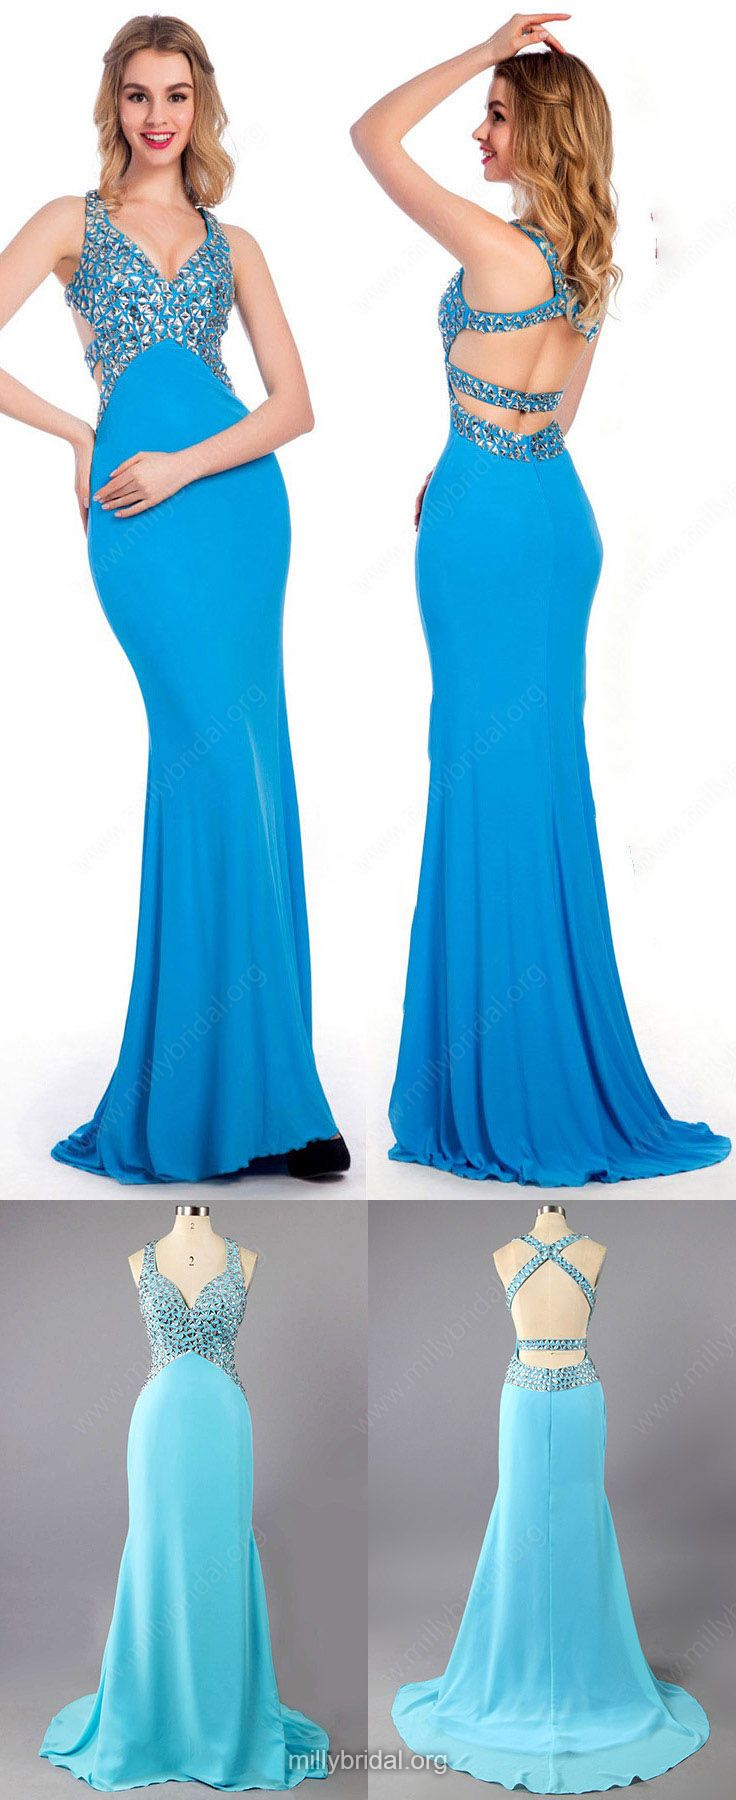 Blue Prom Dresses,Long Prom Dresses,Backless Prom Dresses Trumpet/Mermaid, Sweetheart Prom Dresses Chiffon, Crystal Detailing Prom Dresses Modest #eveninggowns